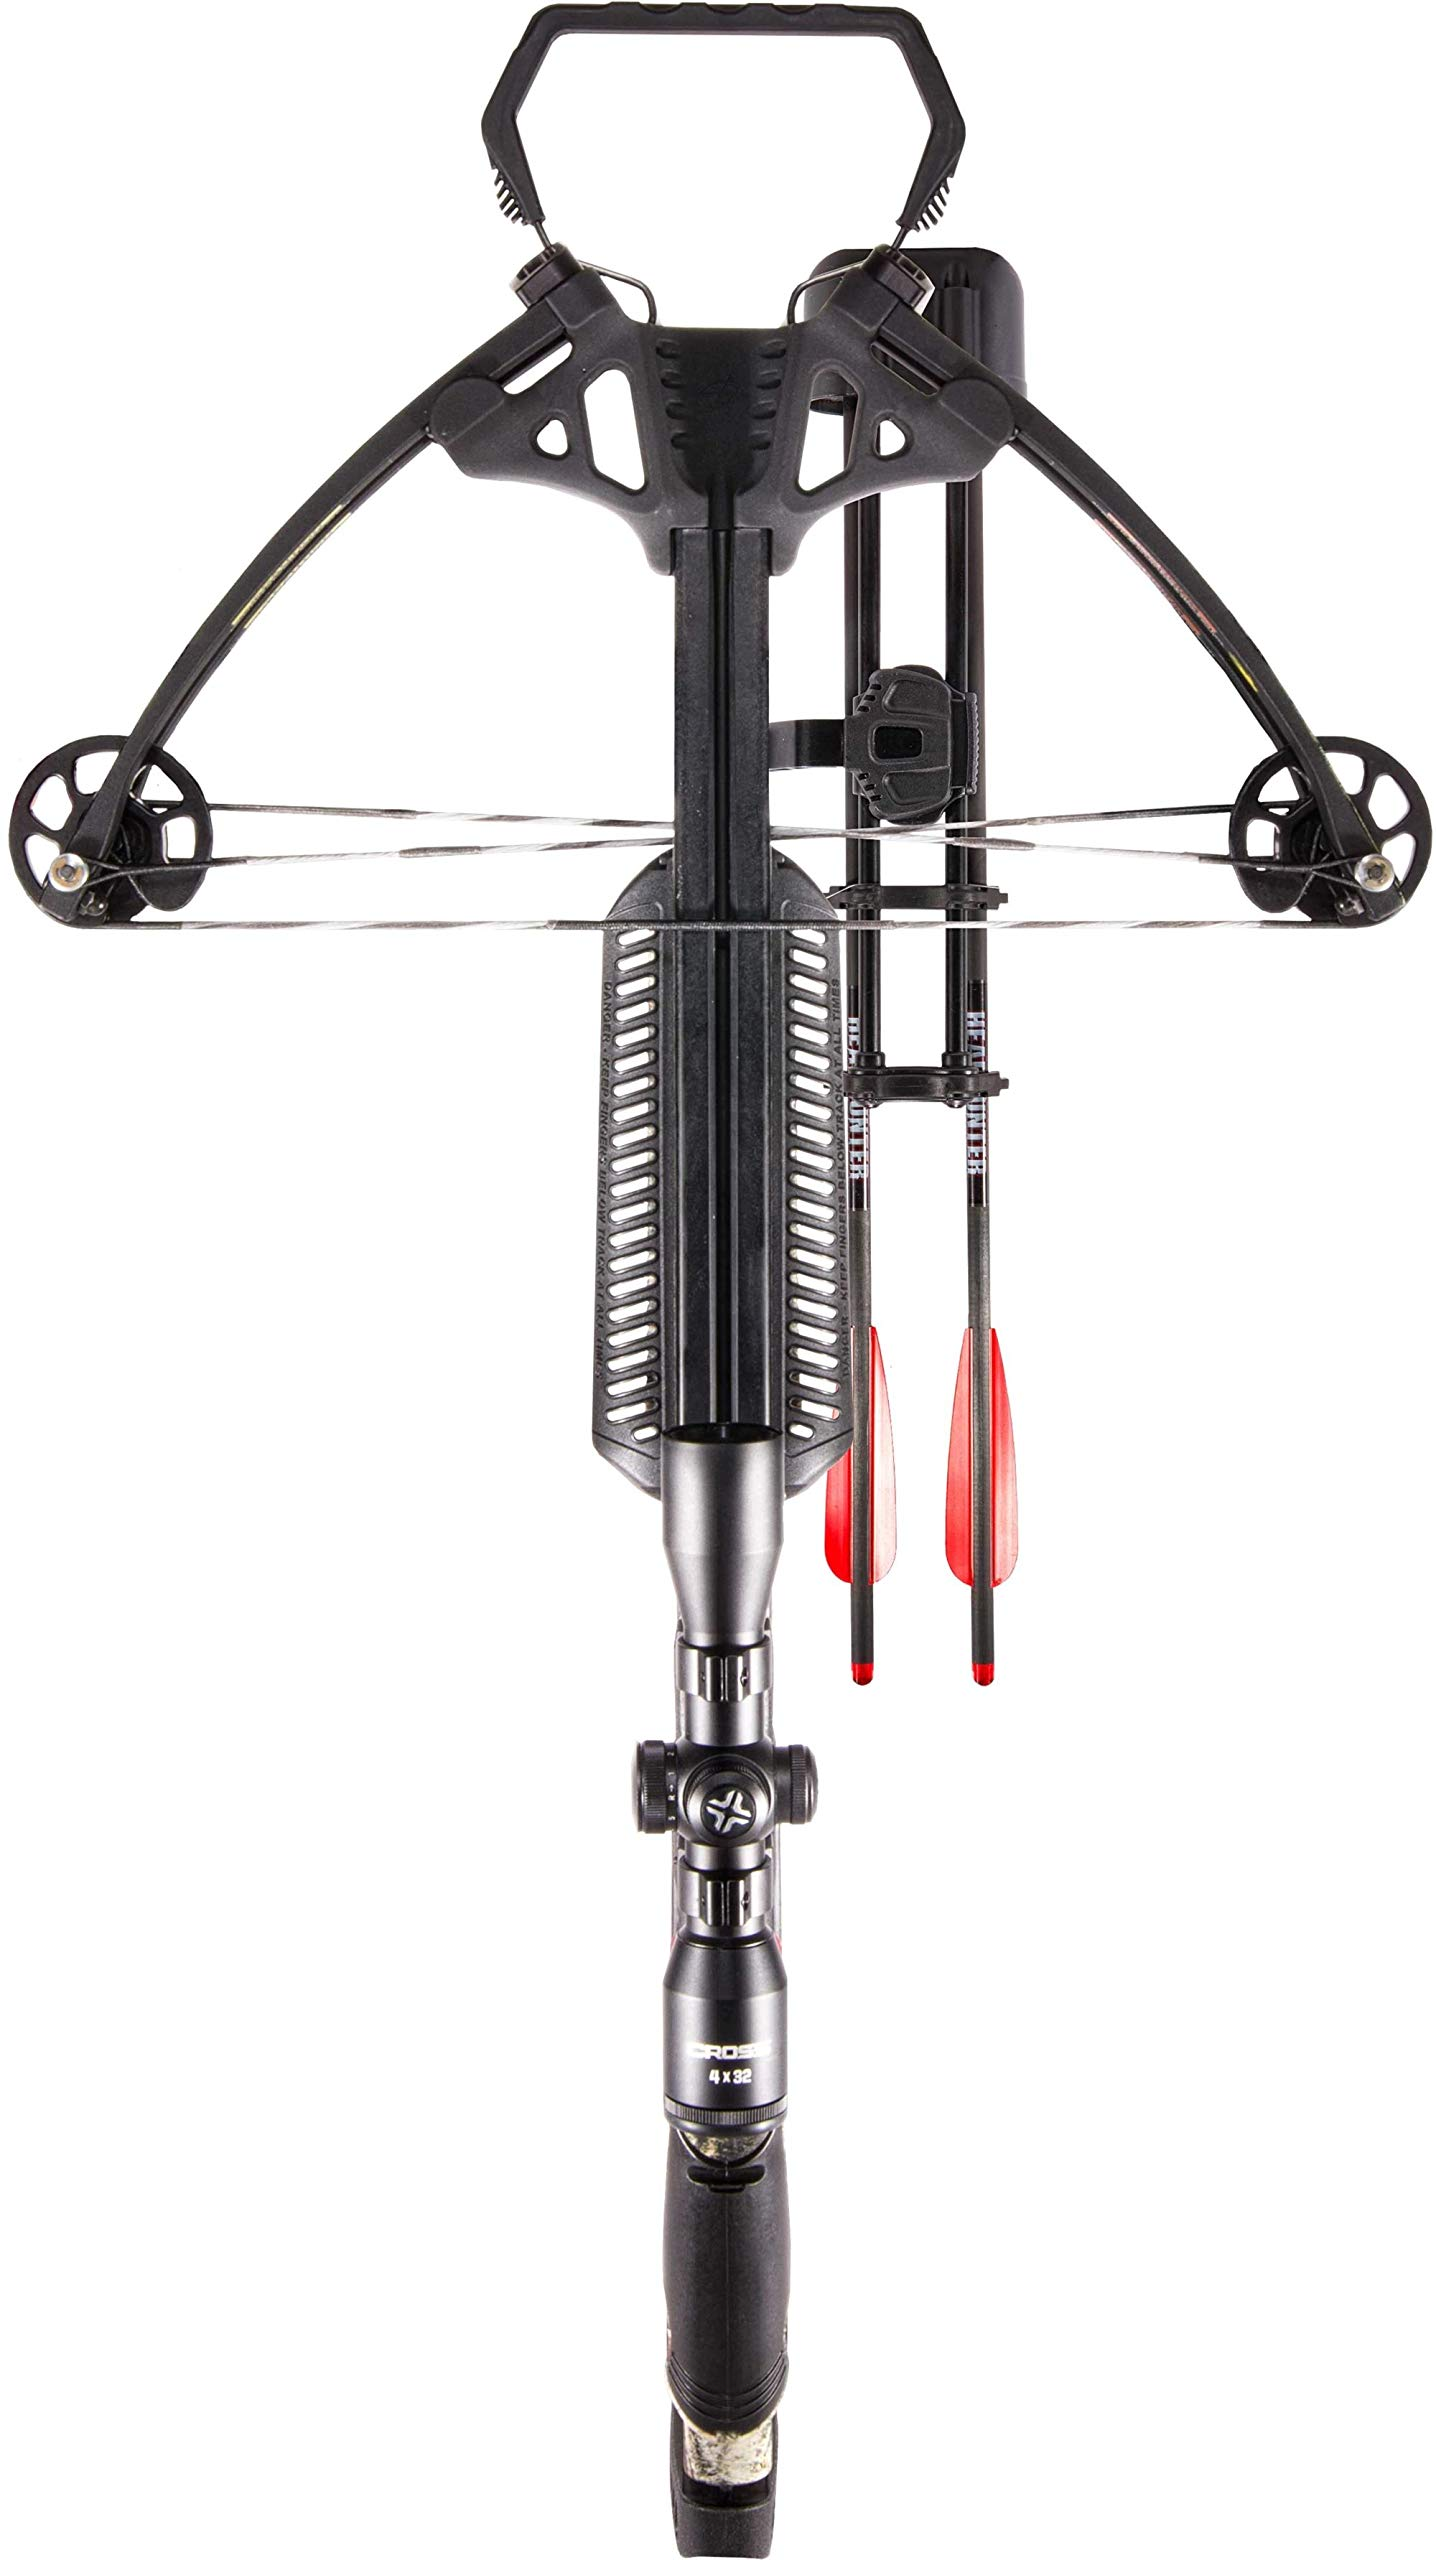 Barnett Whitetail Hunter II Crossbow | 350 Feet Per Second | Ready to Hunt Package by Barnett